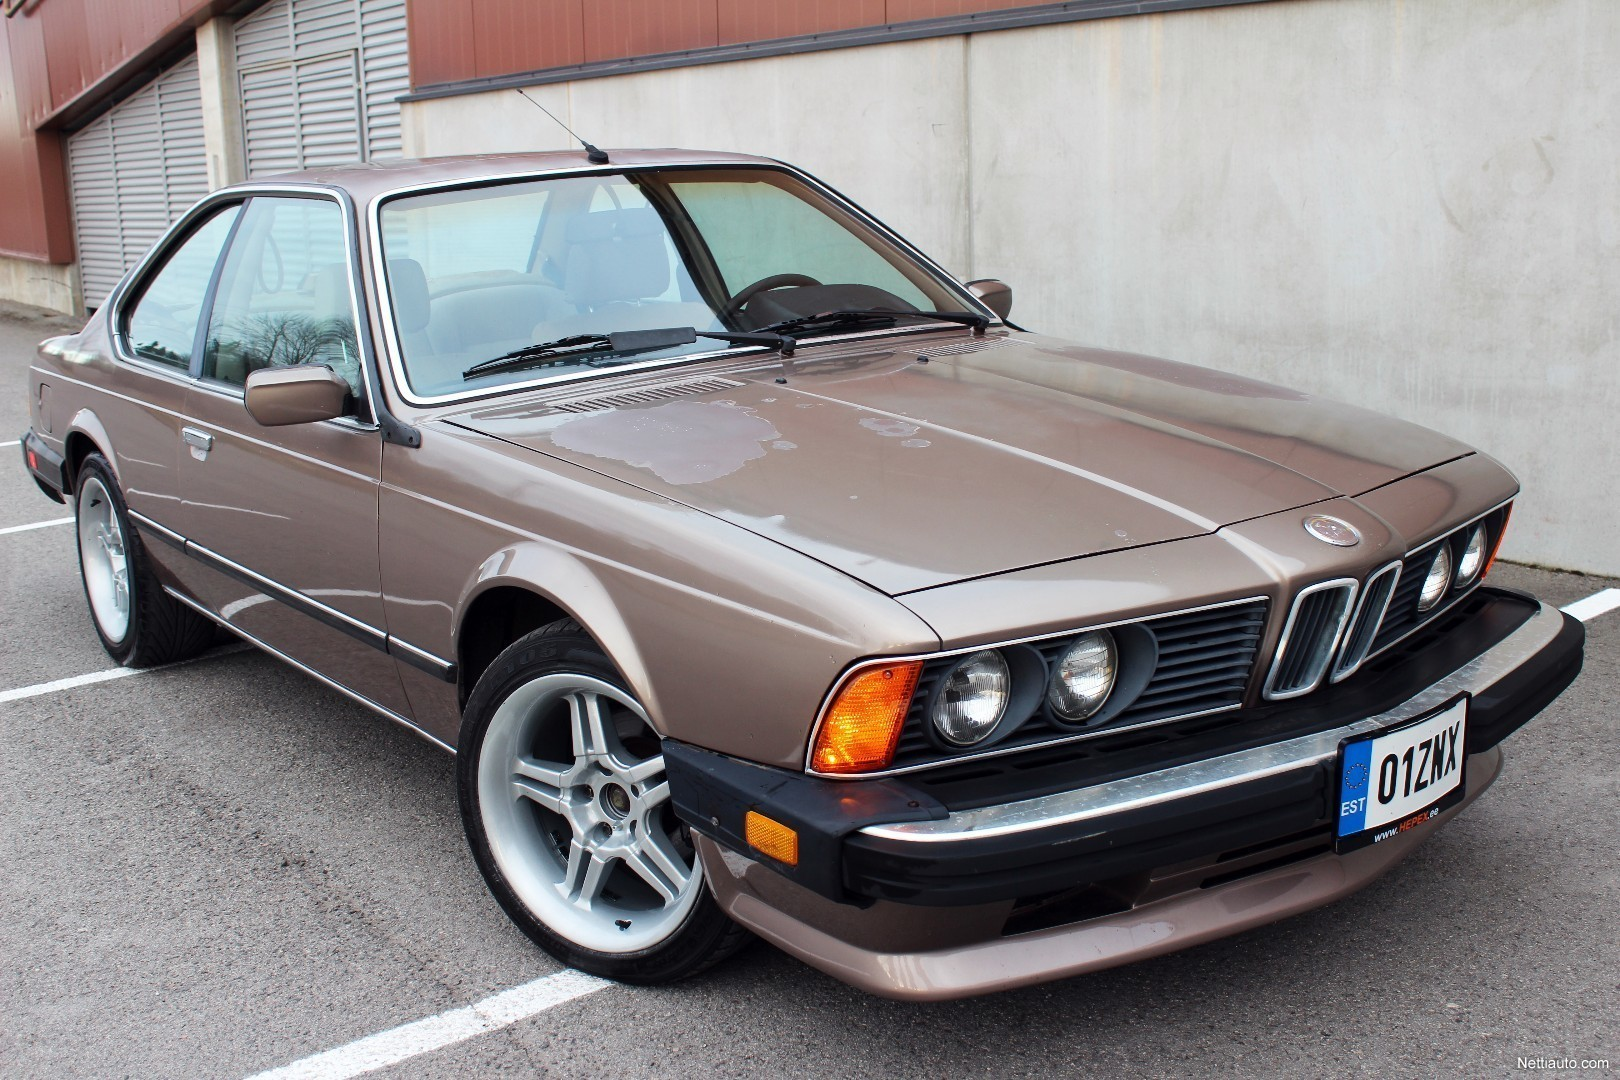 Bmw 635 Csi A Coup 1987 Used Vehicle Nettiauto Auto Repair 735i 1986 Electrical Add To Compare